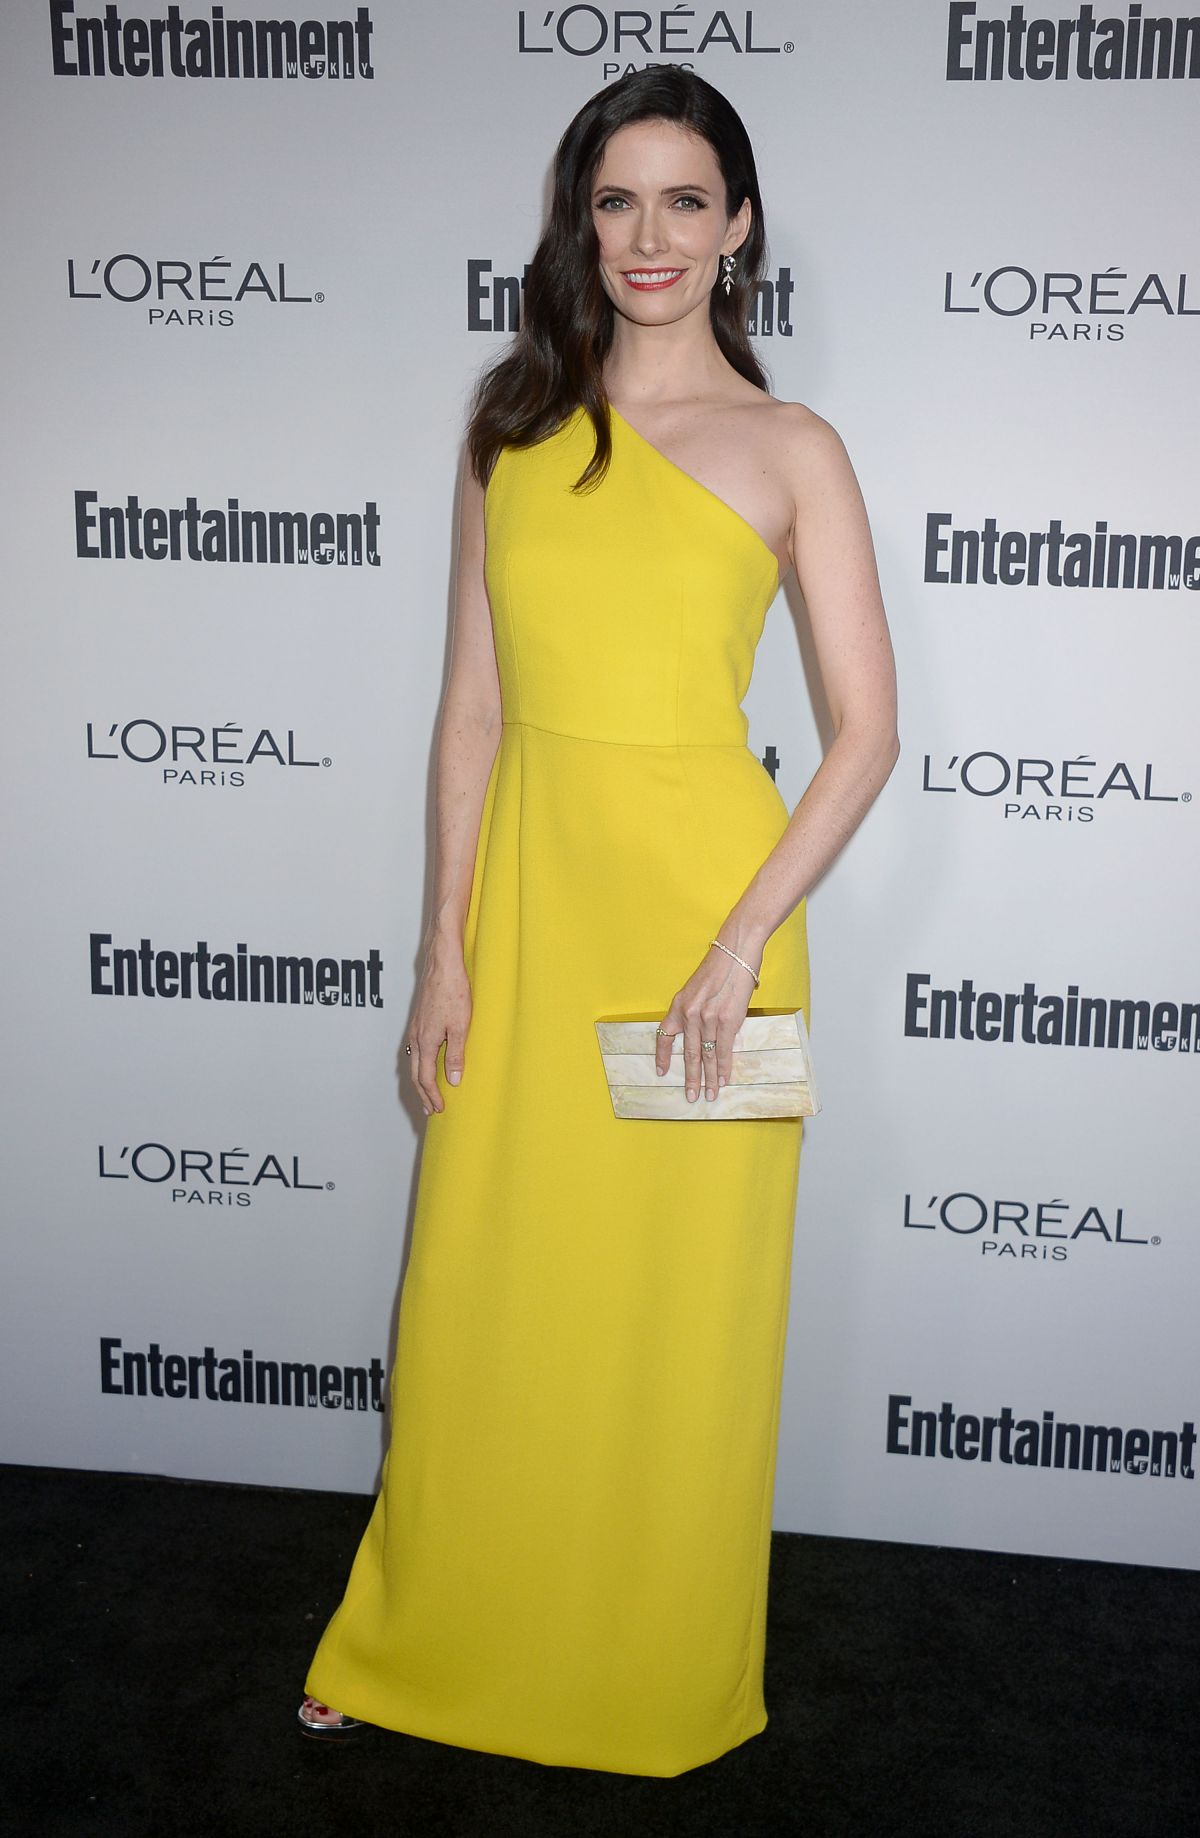 BITSIE TULLOCH at Entertainment Weekly 2016 Pre-emmy Party in Los Angeles 09/16/2016